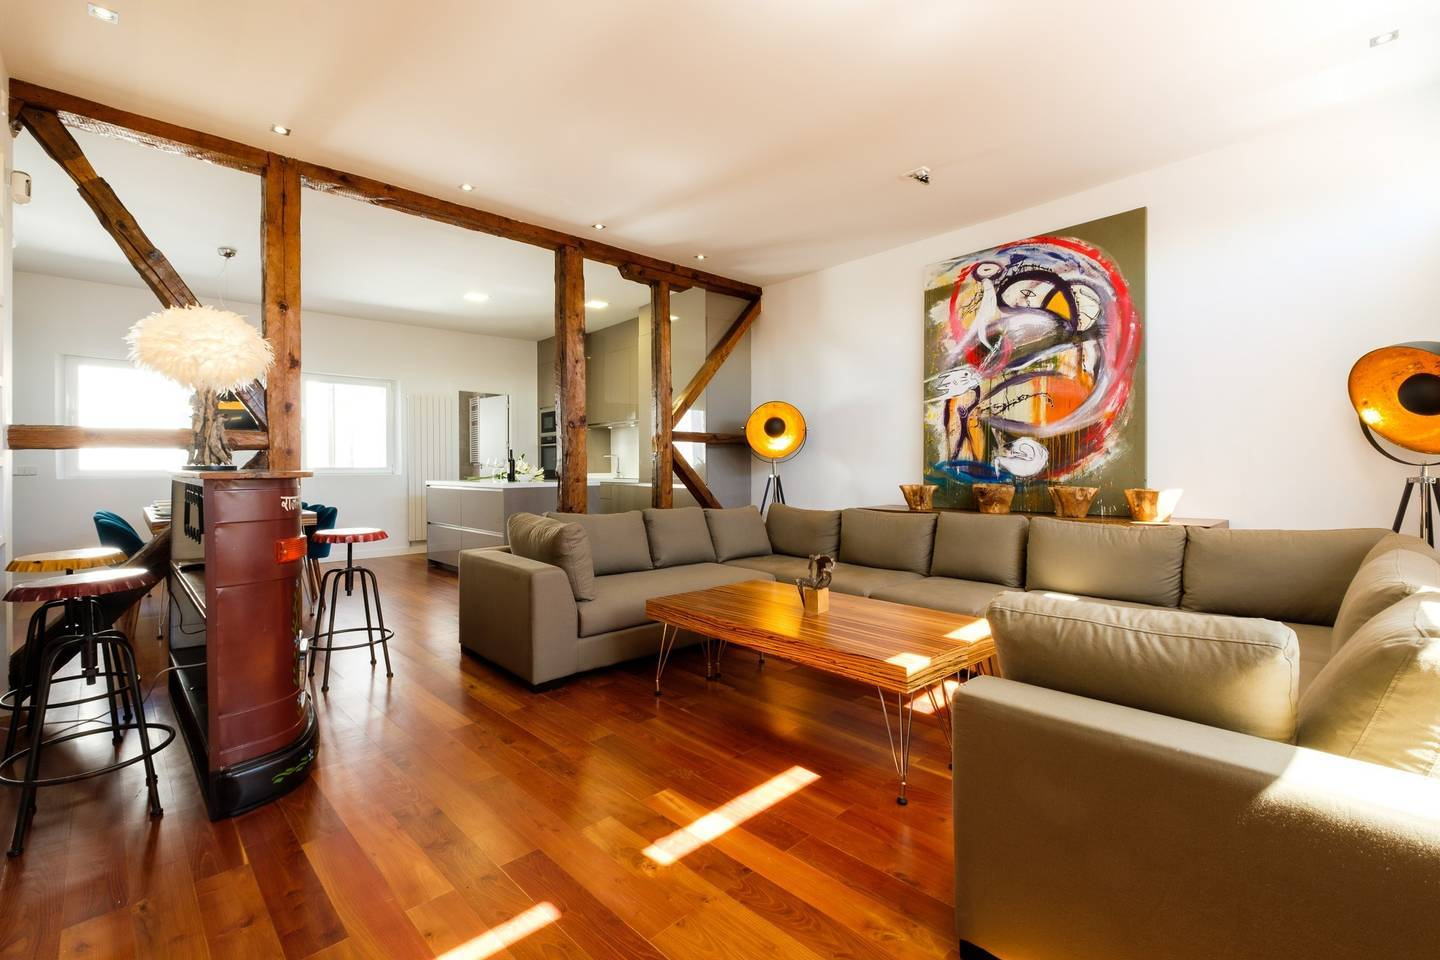 The best airbnbs in madrid